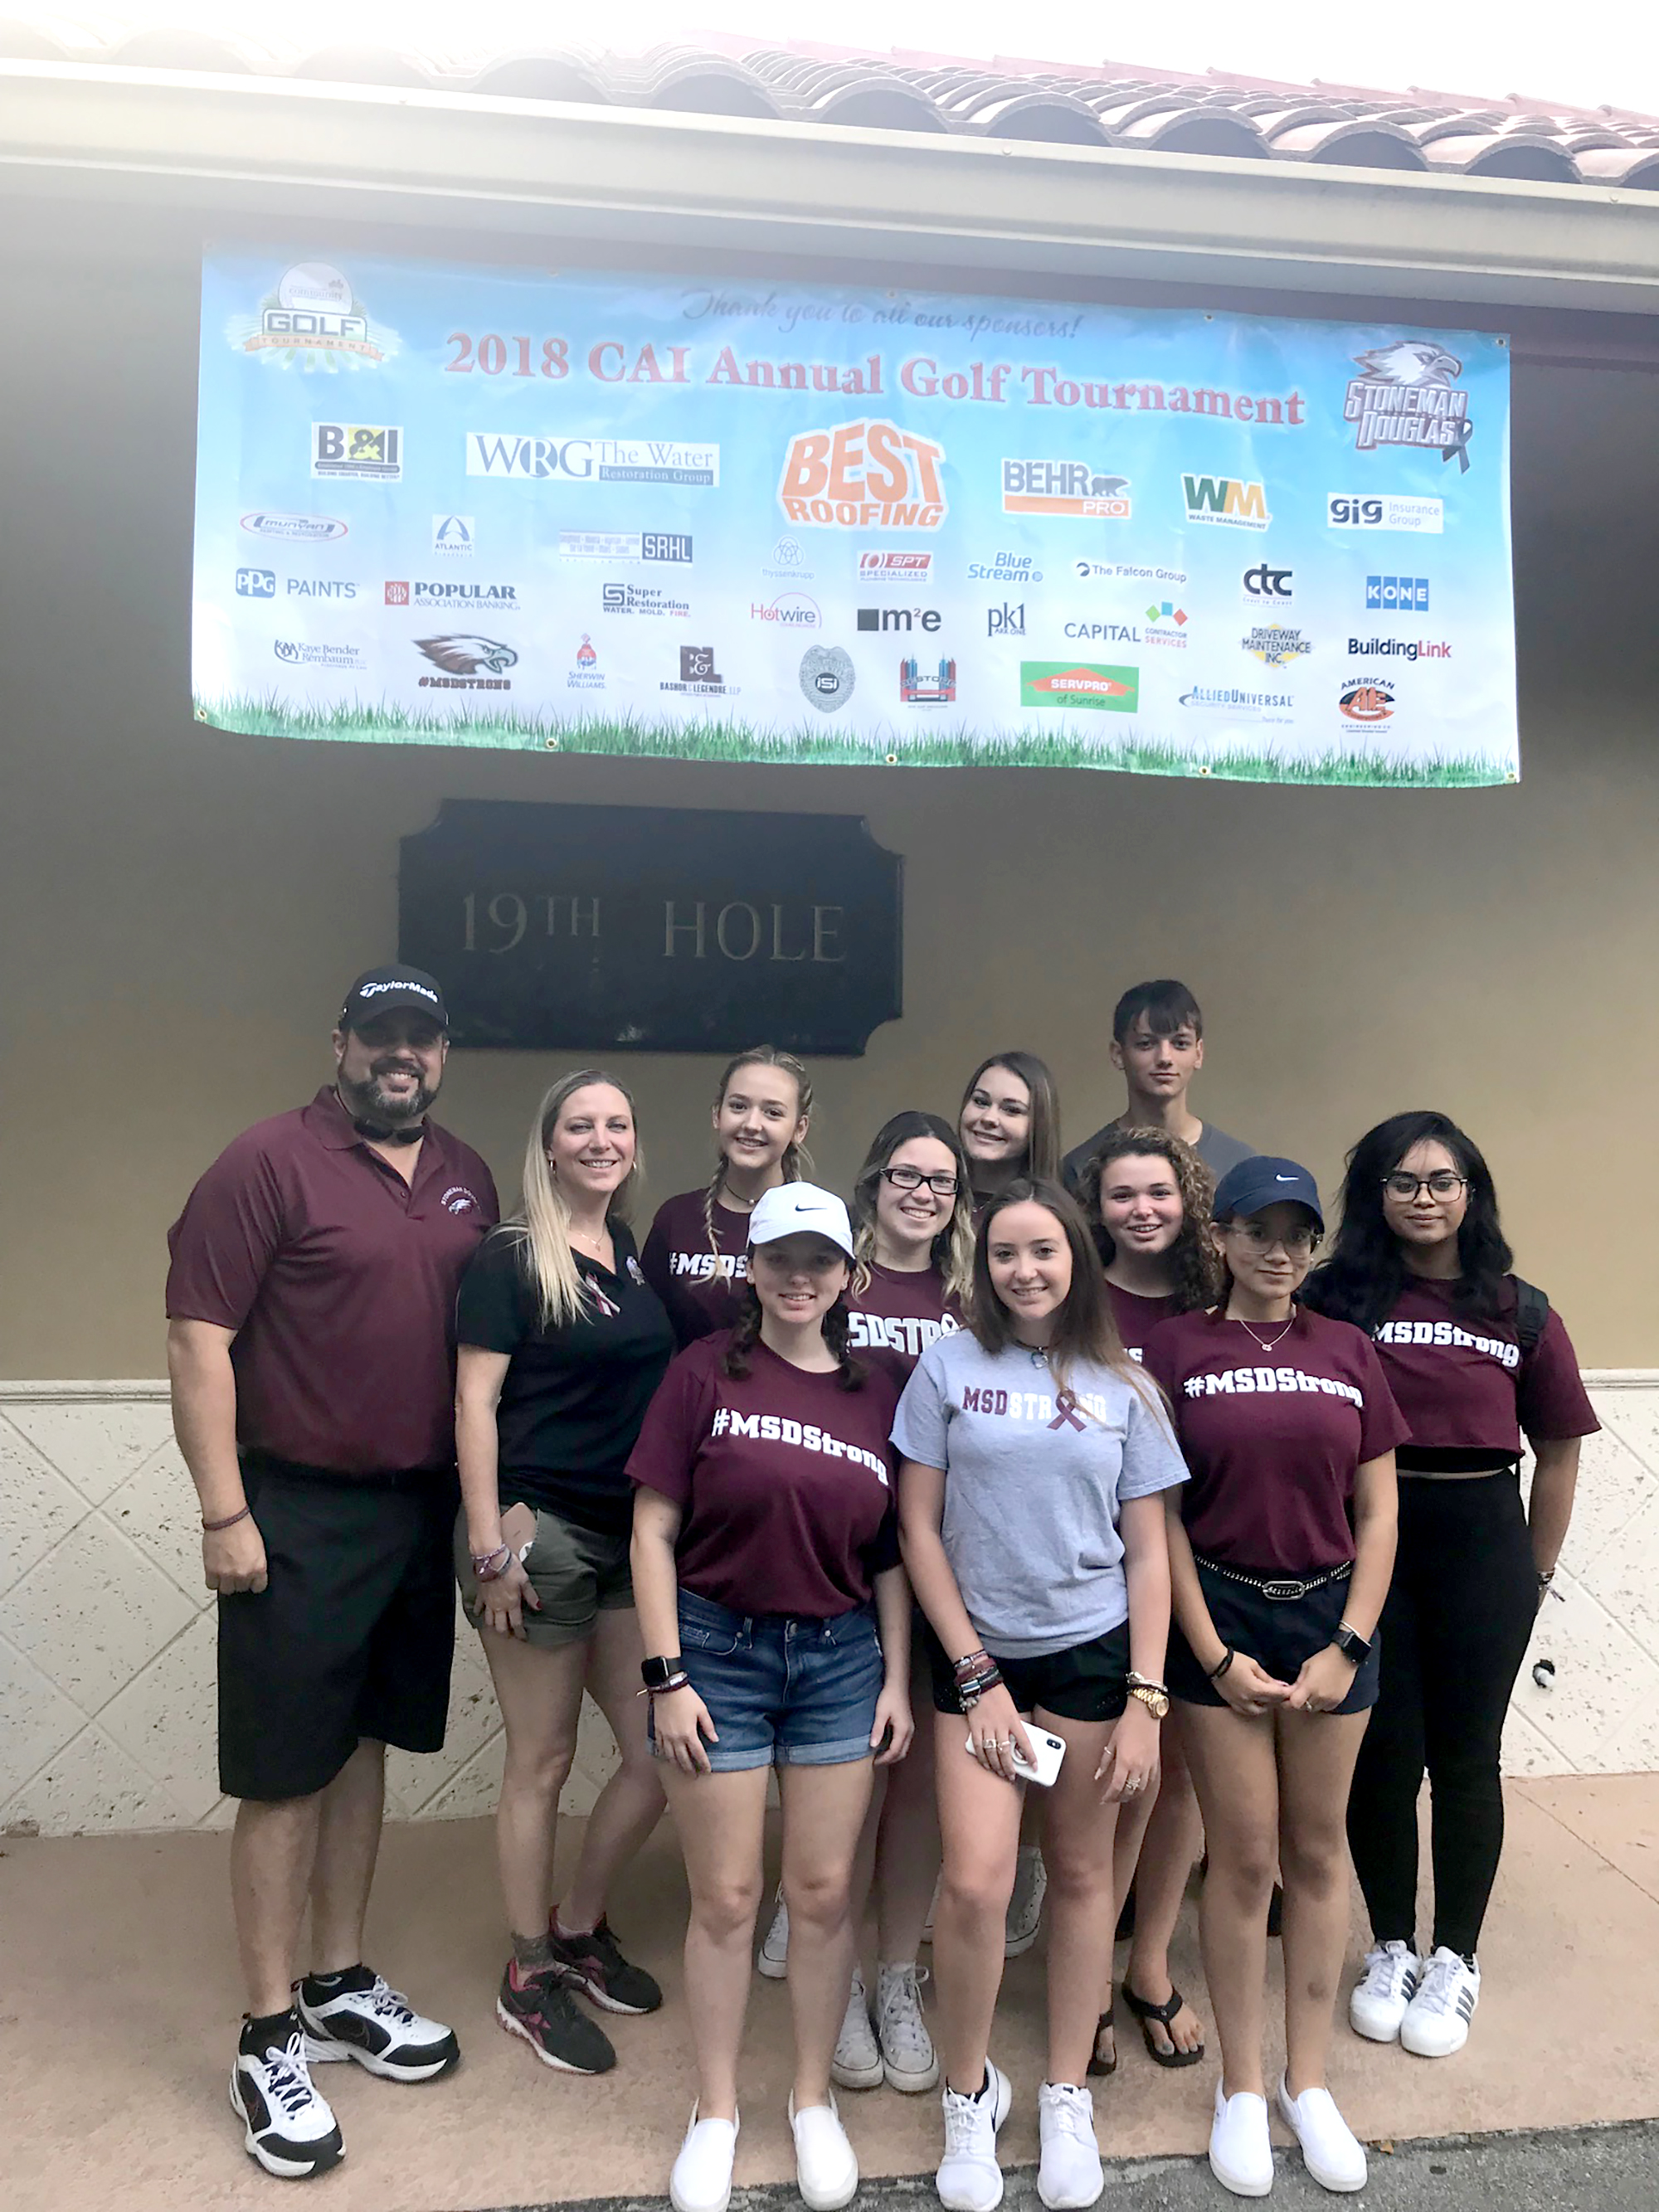 Making a difference after the tragedy at Marjory Stoneman Douglas